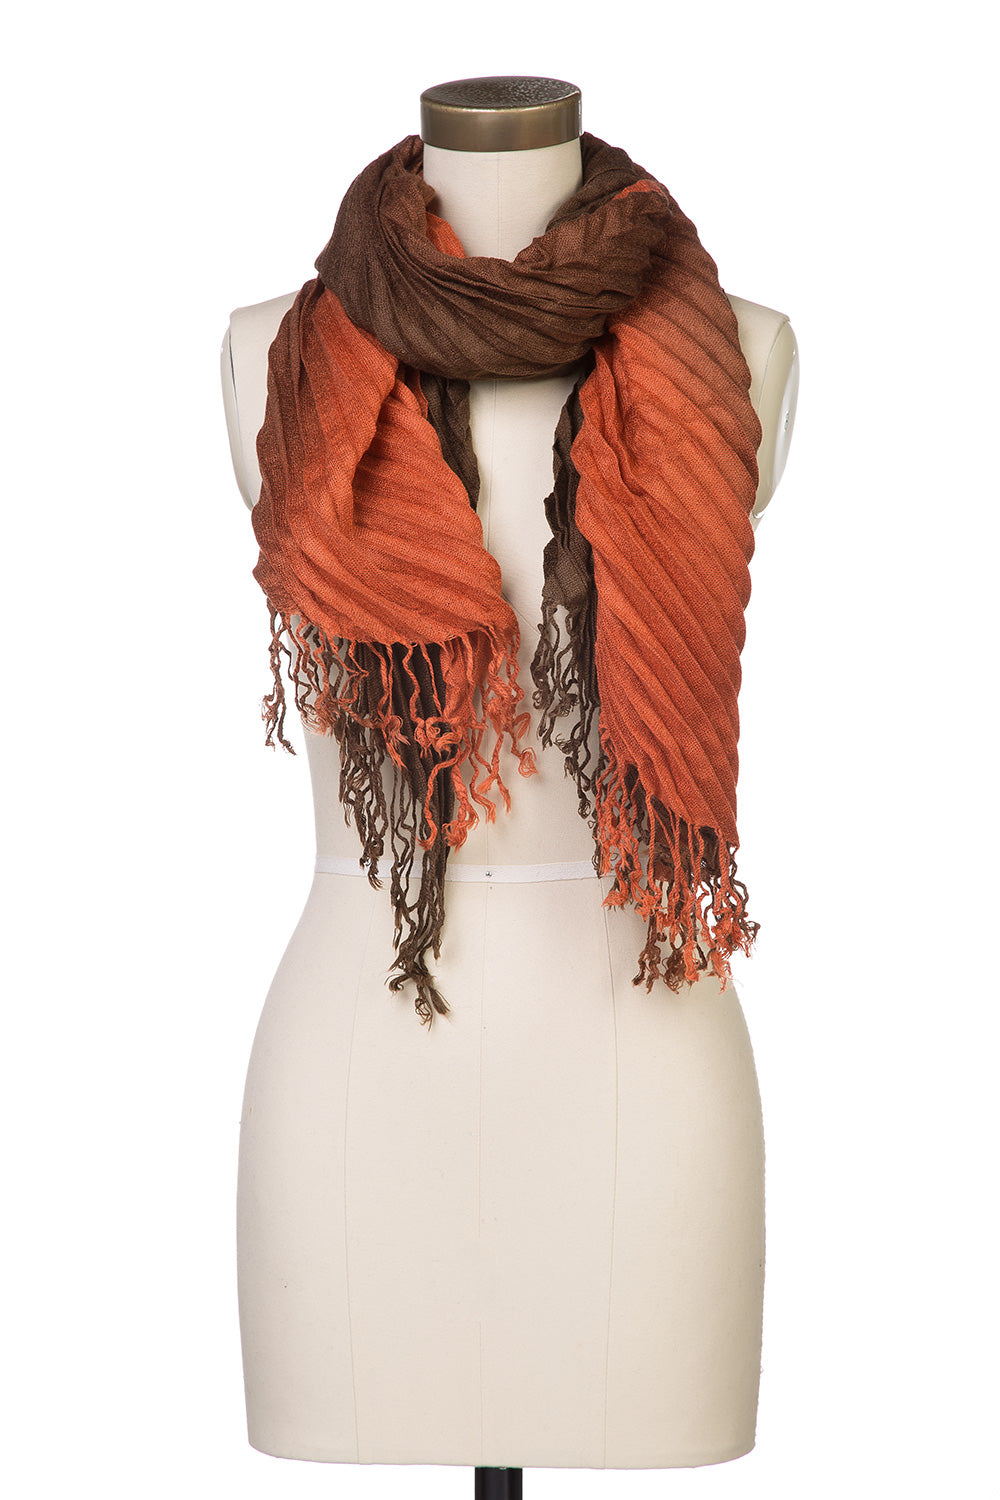 Type 3 Accordion Ombre Scarf in Coffee and Rusty Red